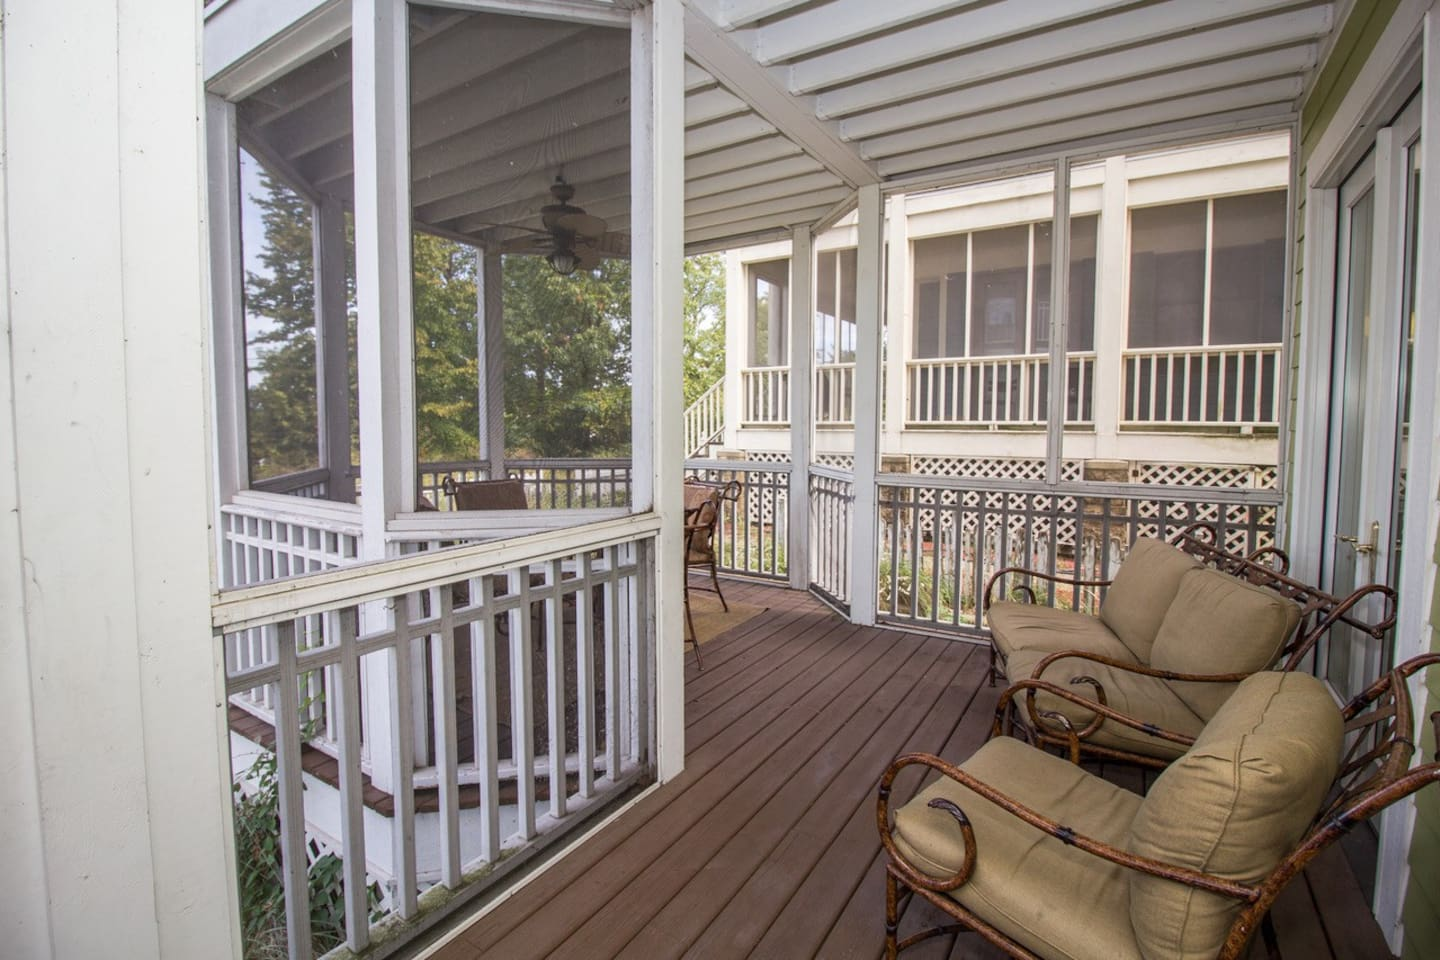 Screened in patio on all 3 levels